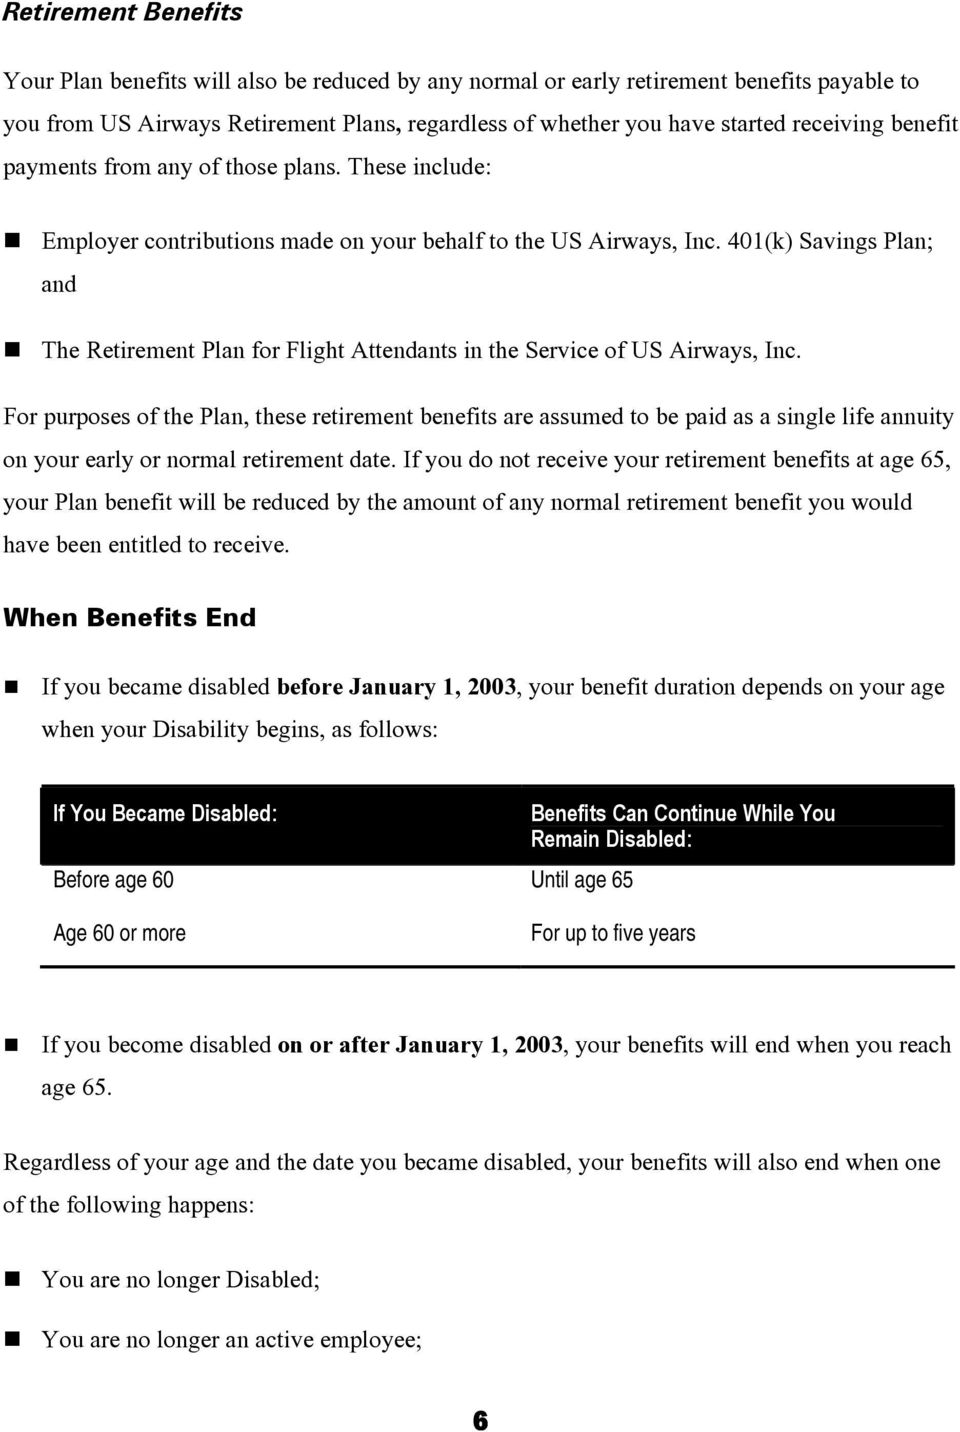 401(k) Savings Plan; and The Retirement Plan for Flight Attendants in the Service of US Airways, Inc.